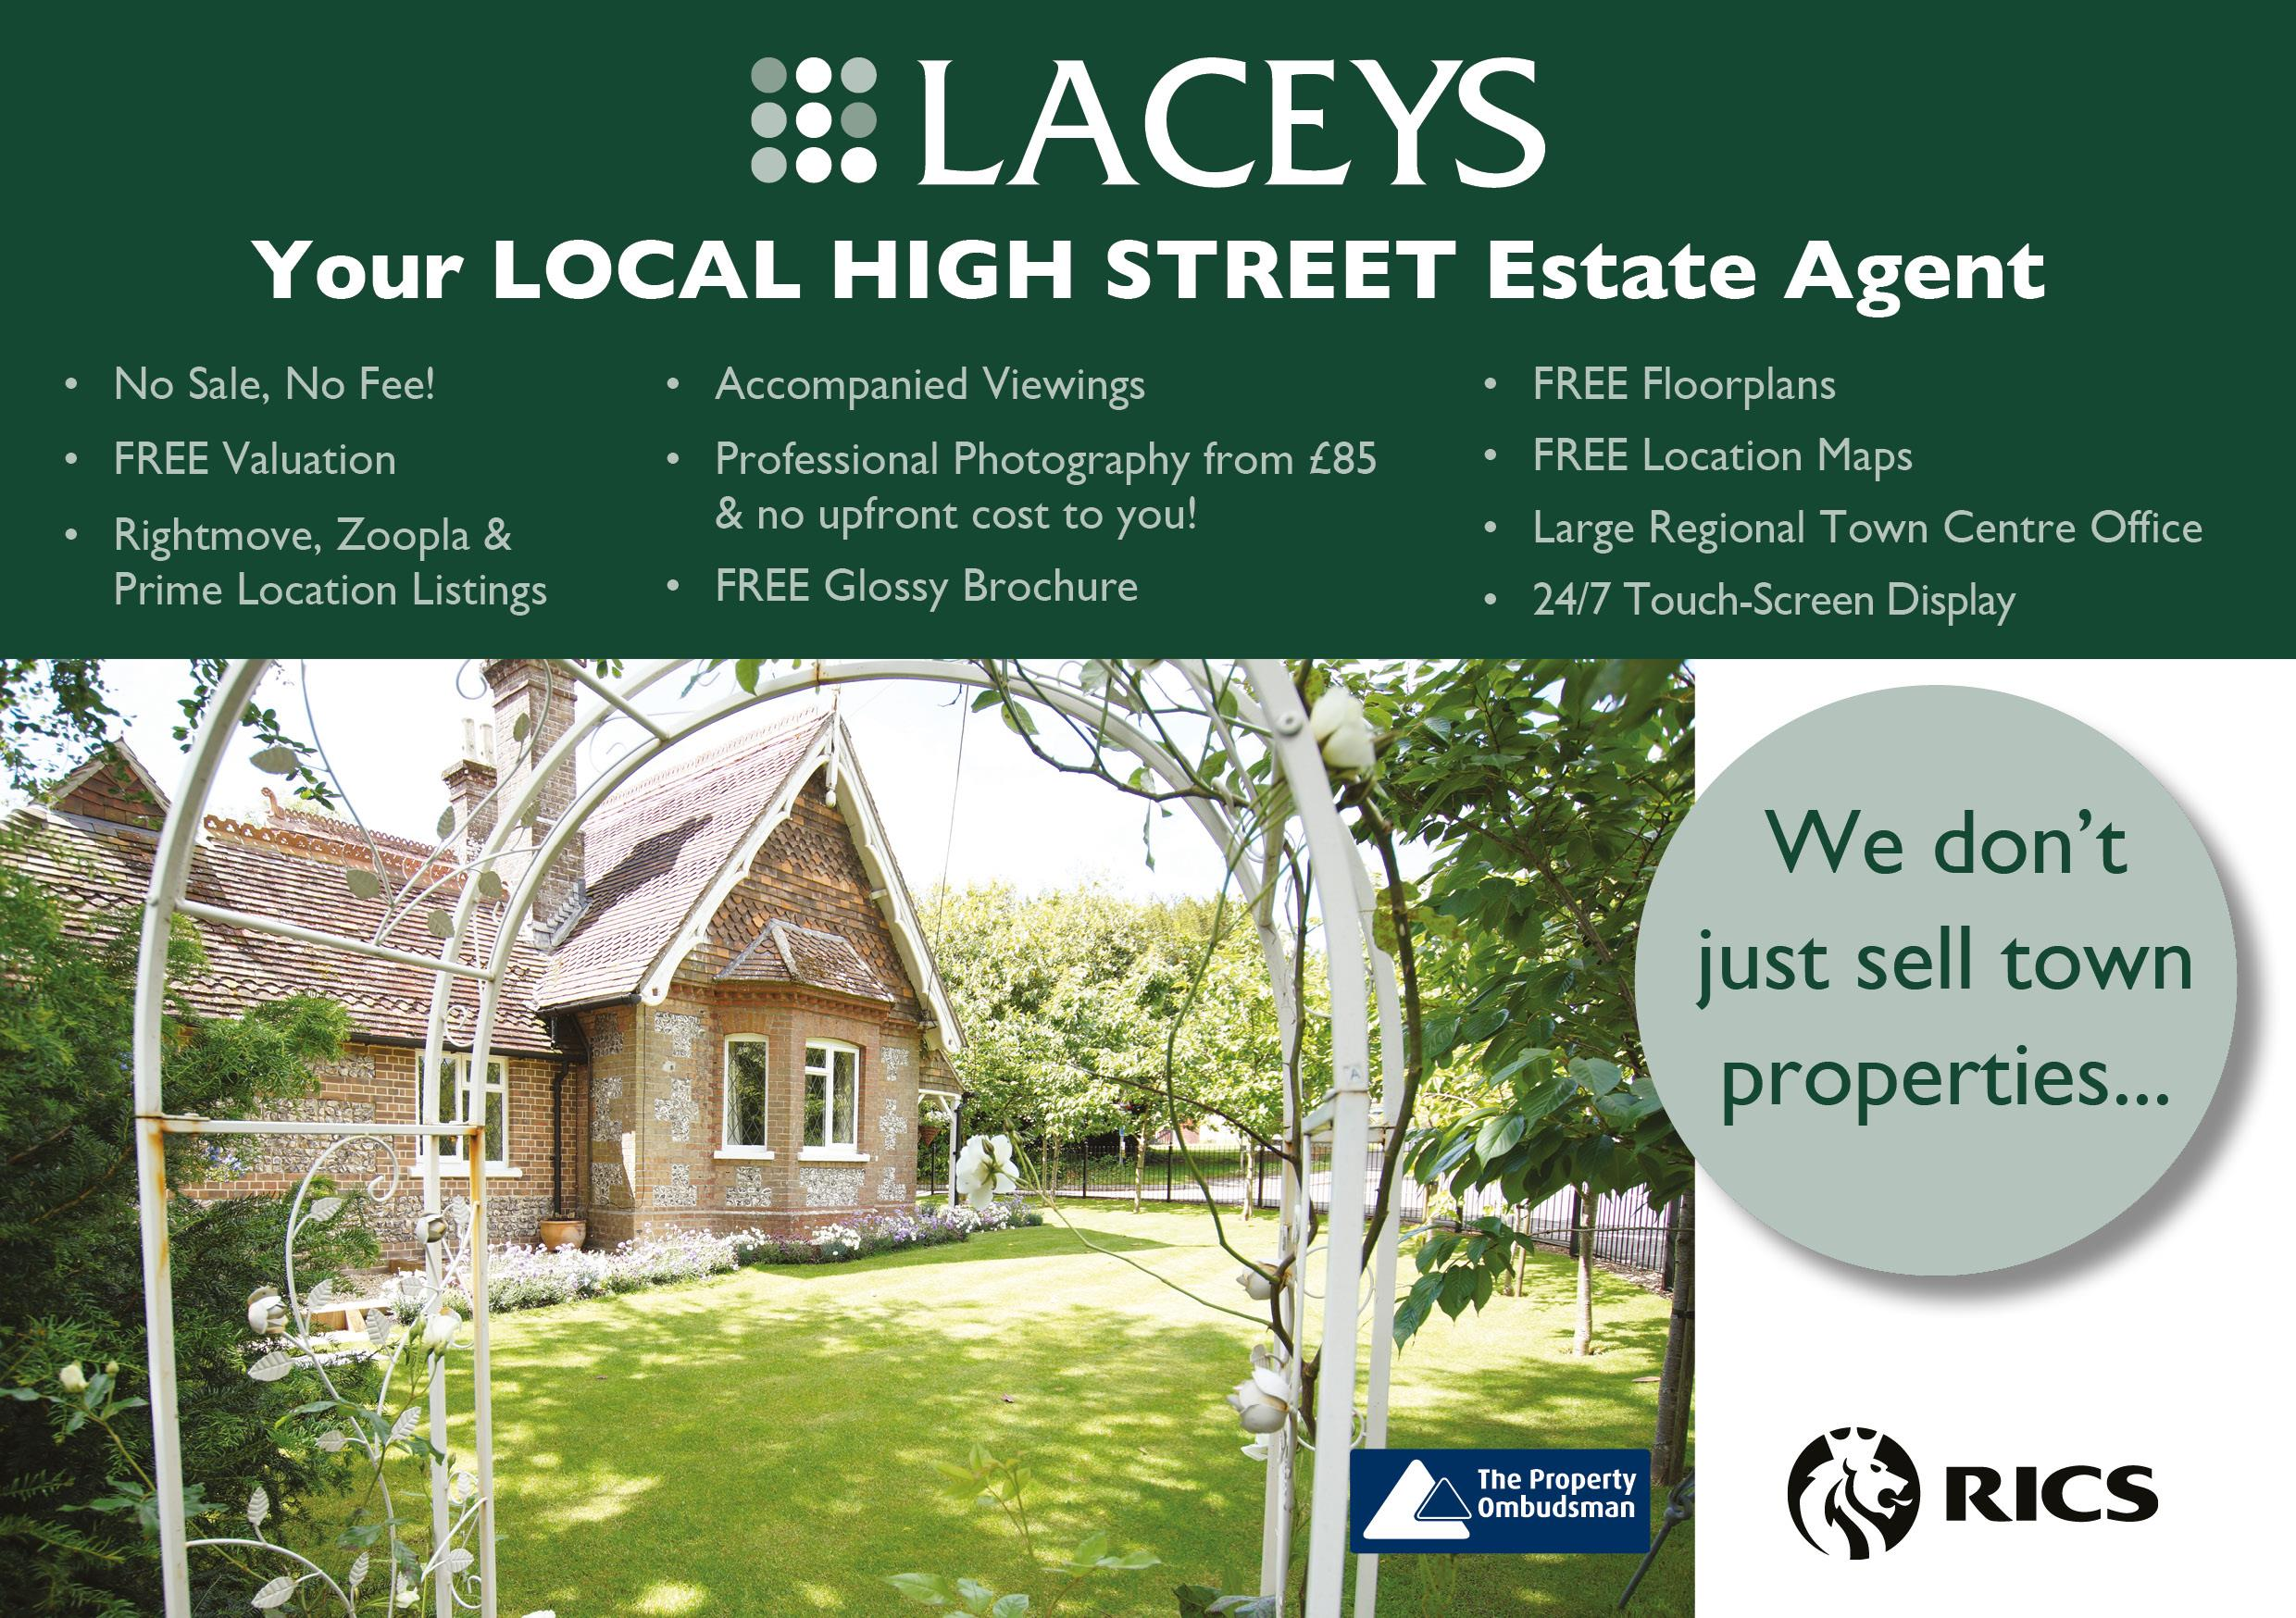 We don't just sell town properties ...